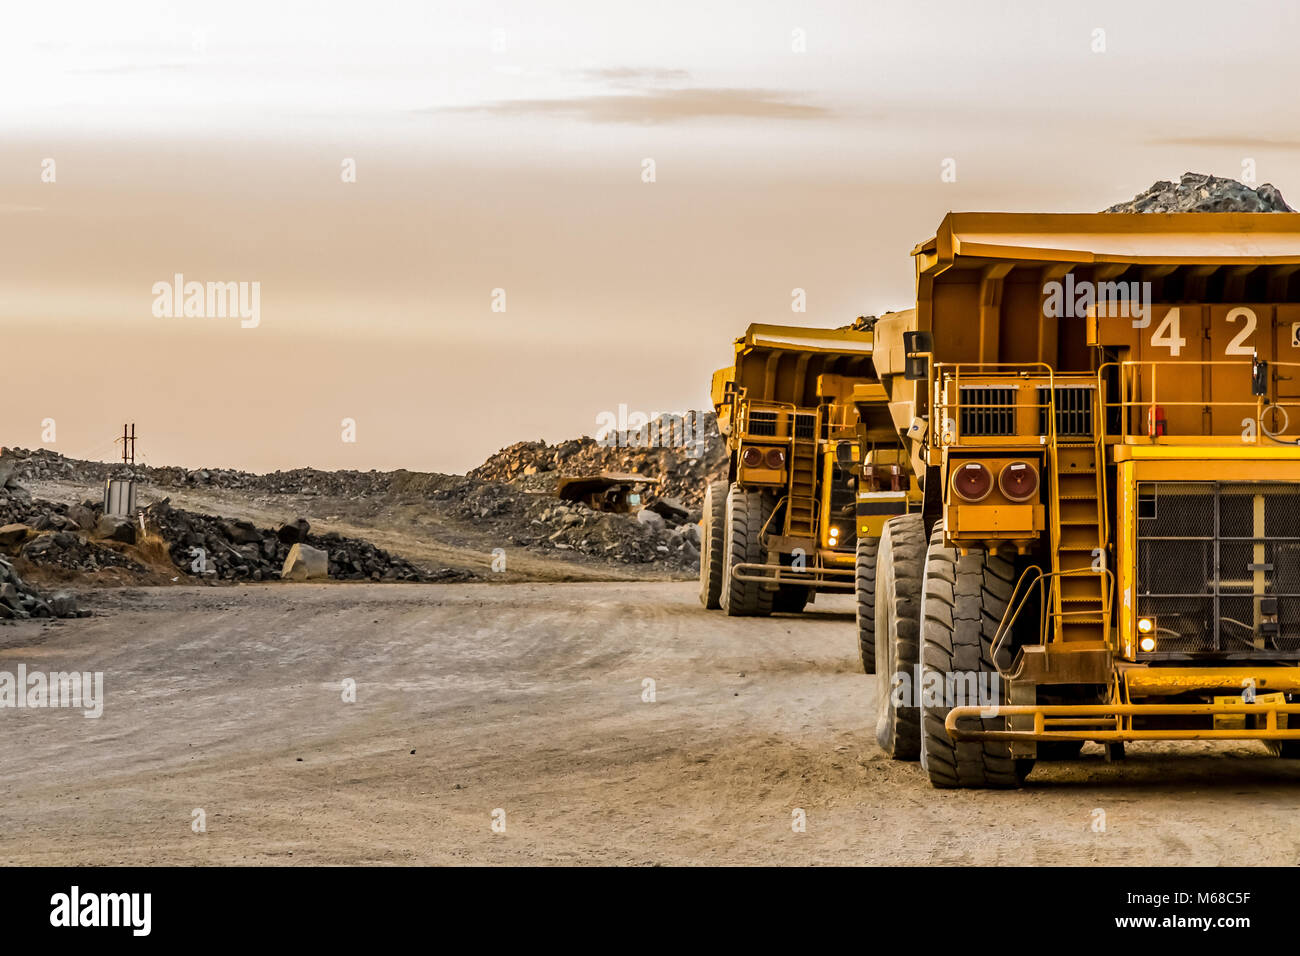 Large Dump Trucks transporting Platinum ore for processing - Stock Image